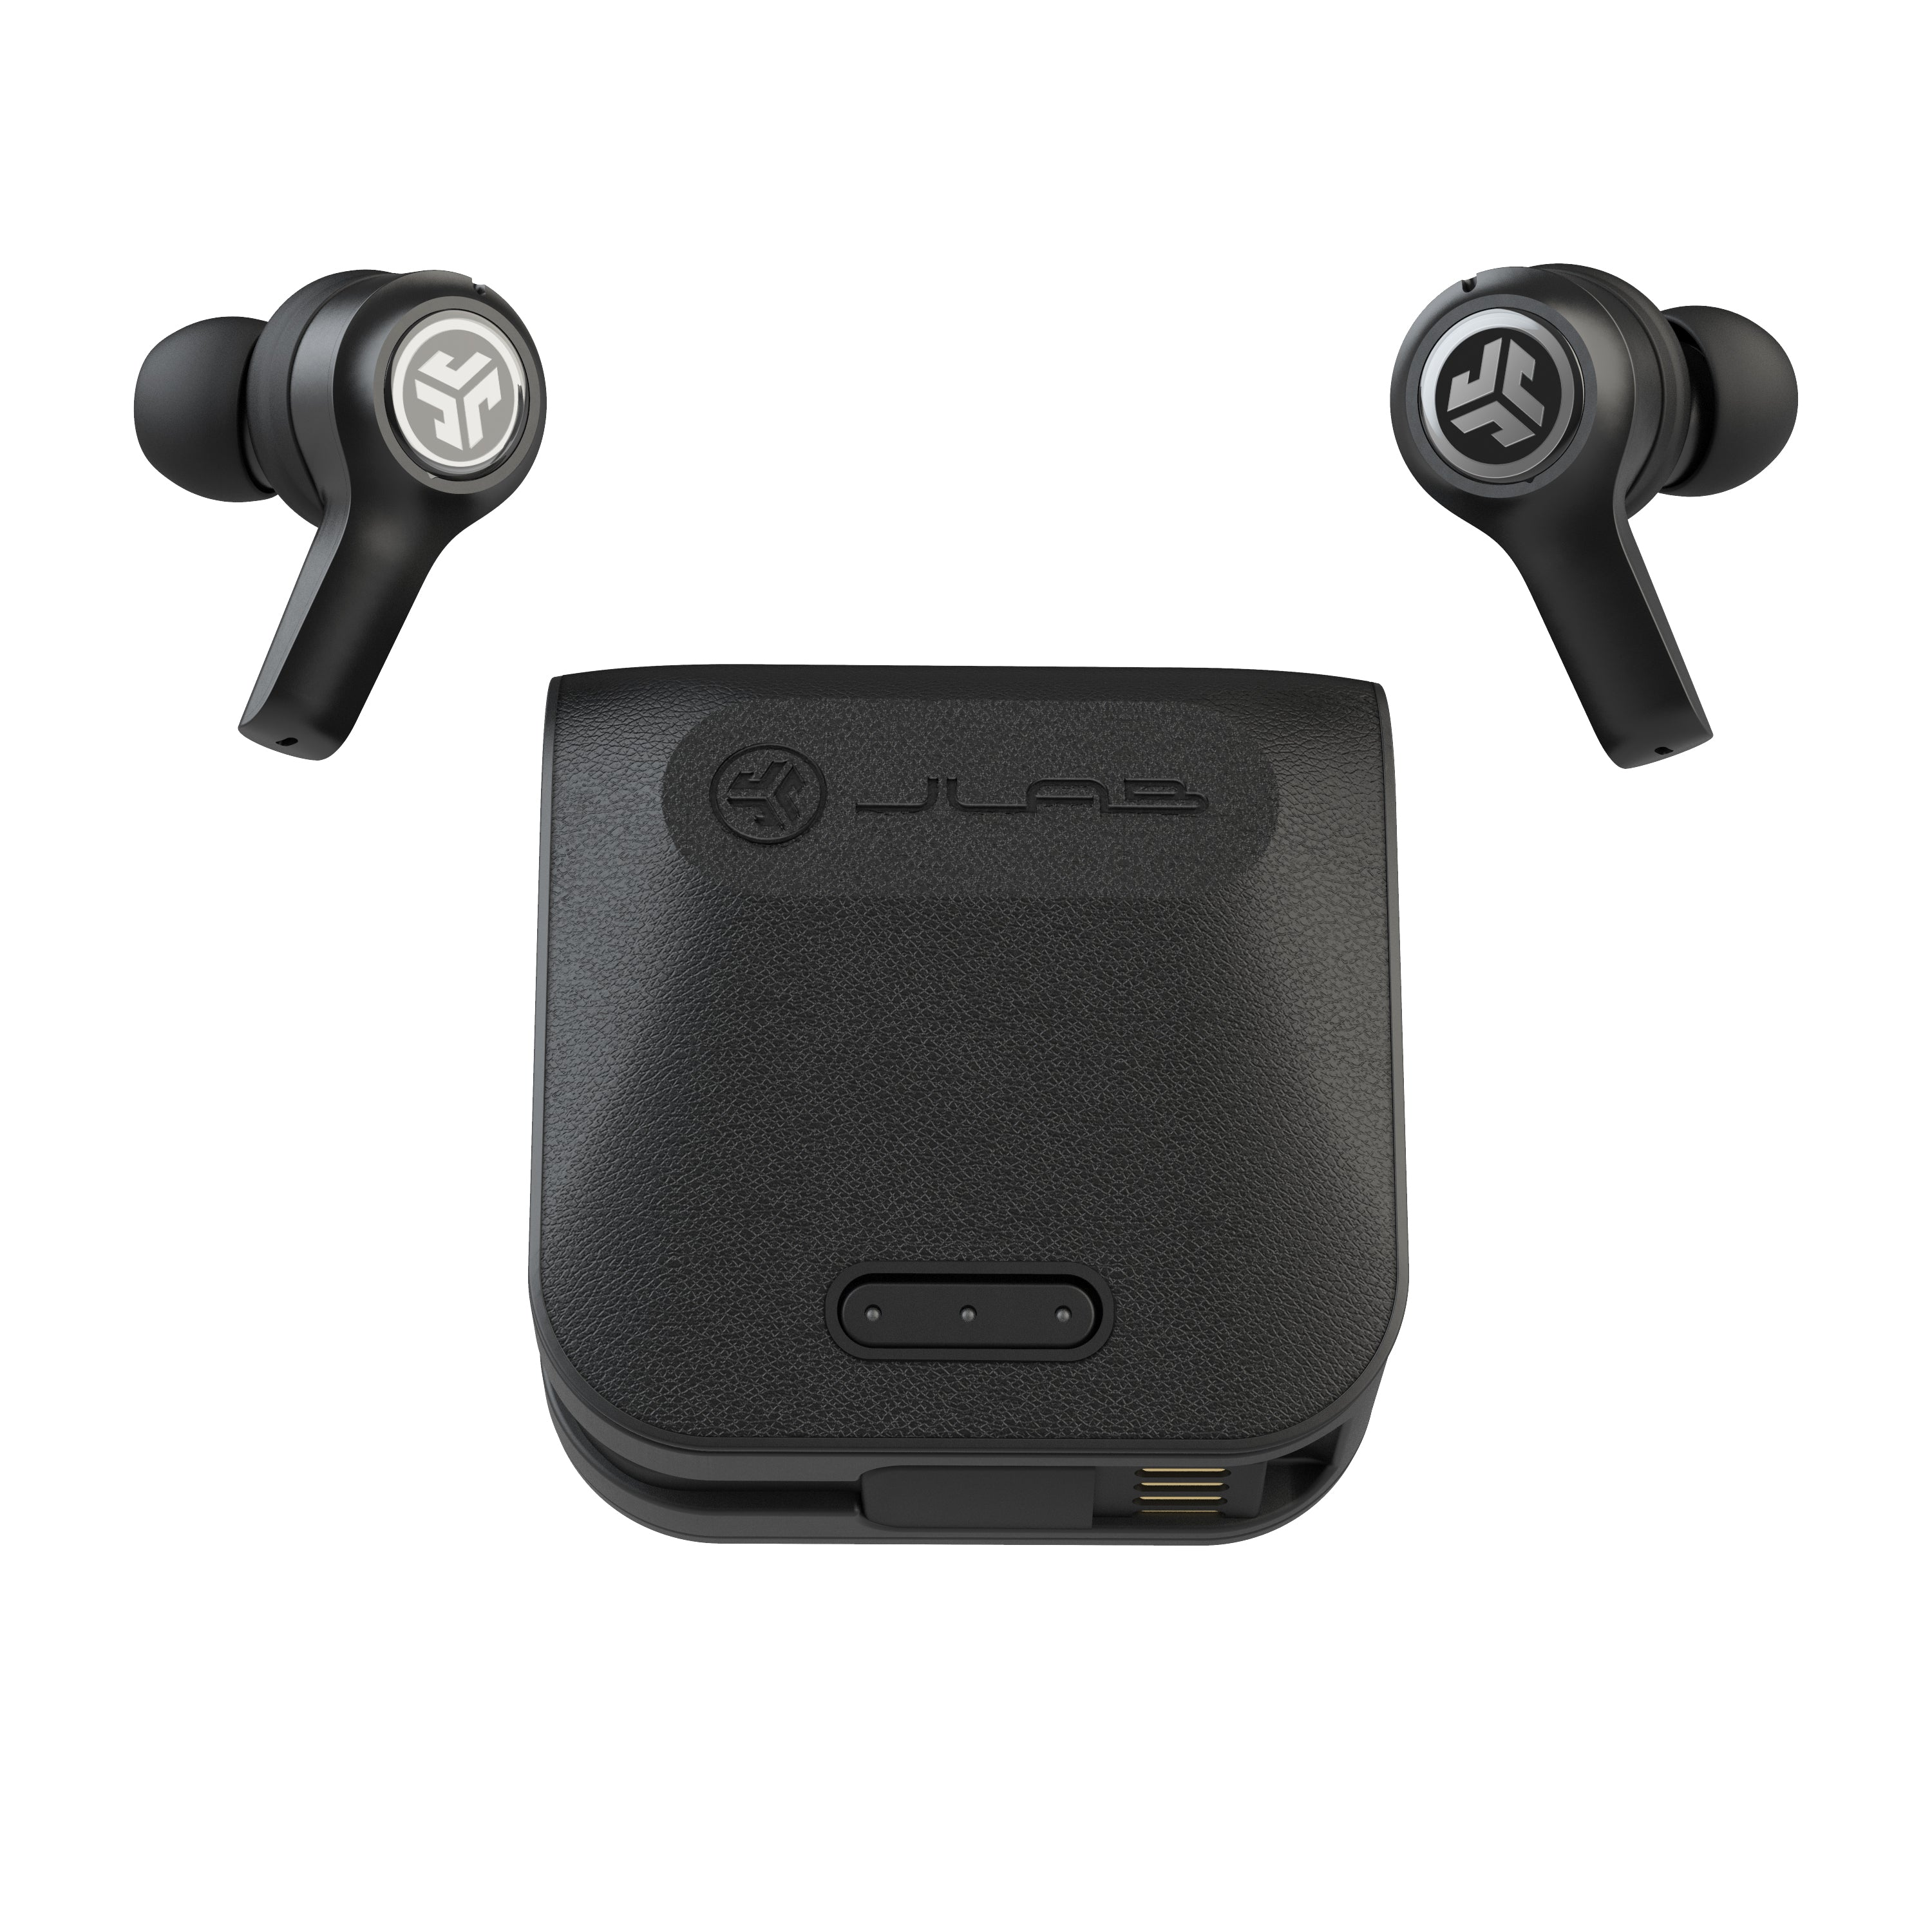 JBuds Air Executive True Wireless Earbuds Oordopjes met oplaadetui